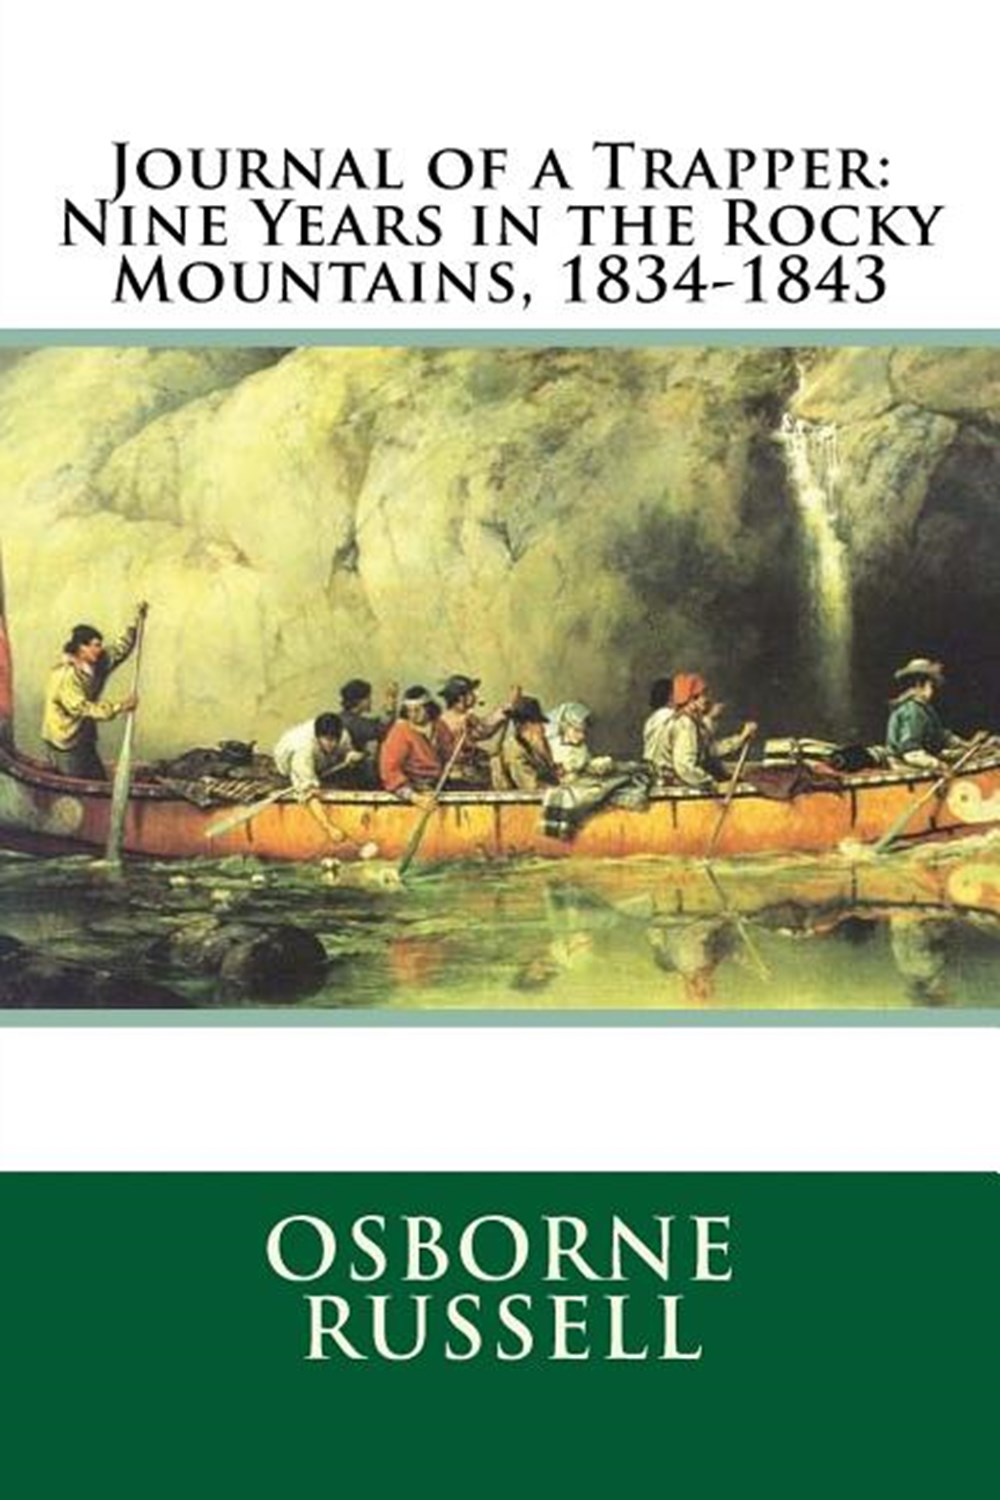 Journal of a Trapper Nine Years in the Rocky Mountains, 1834-1843